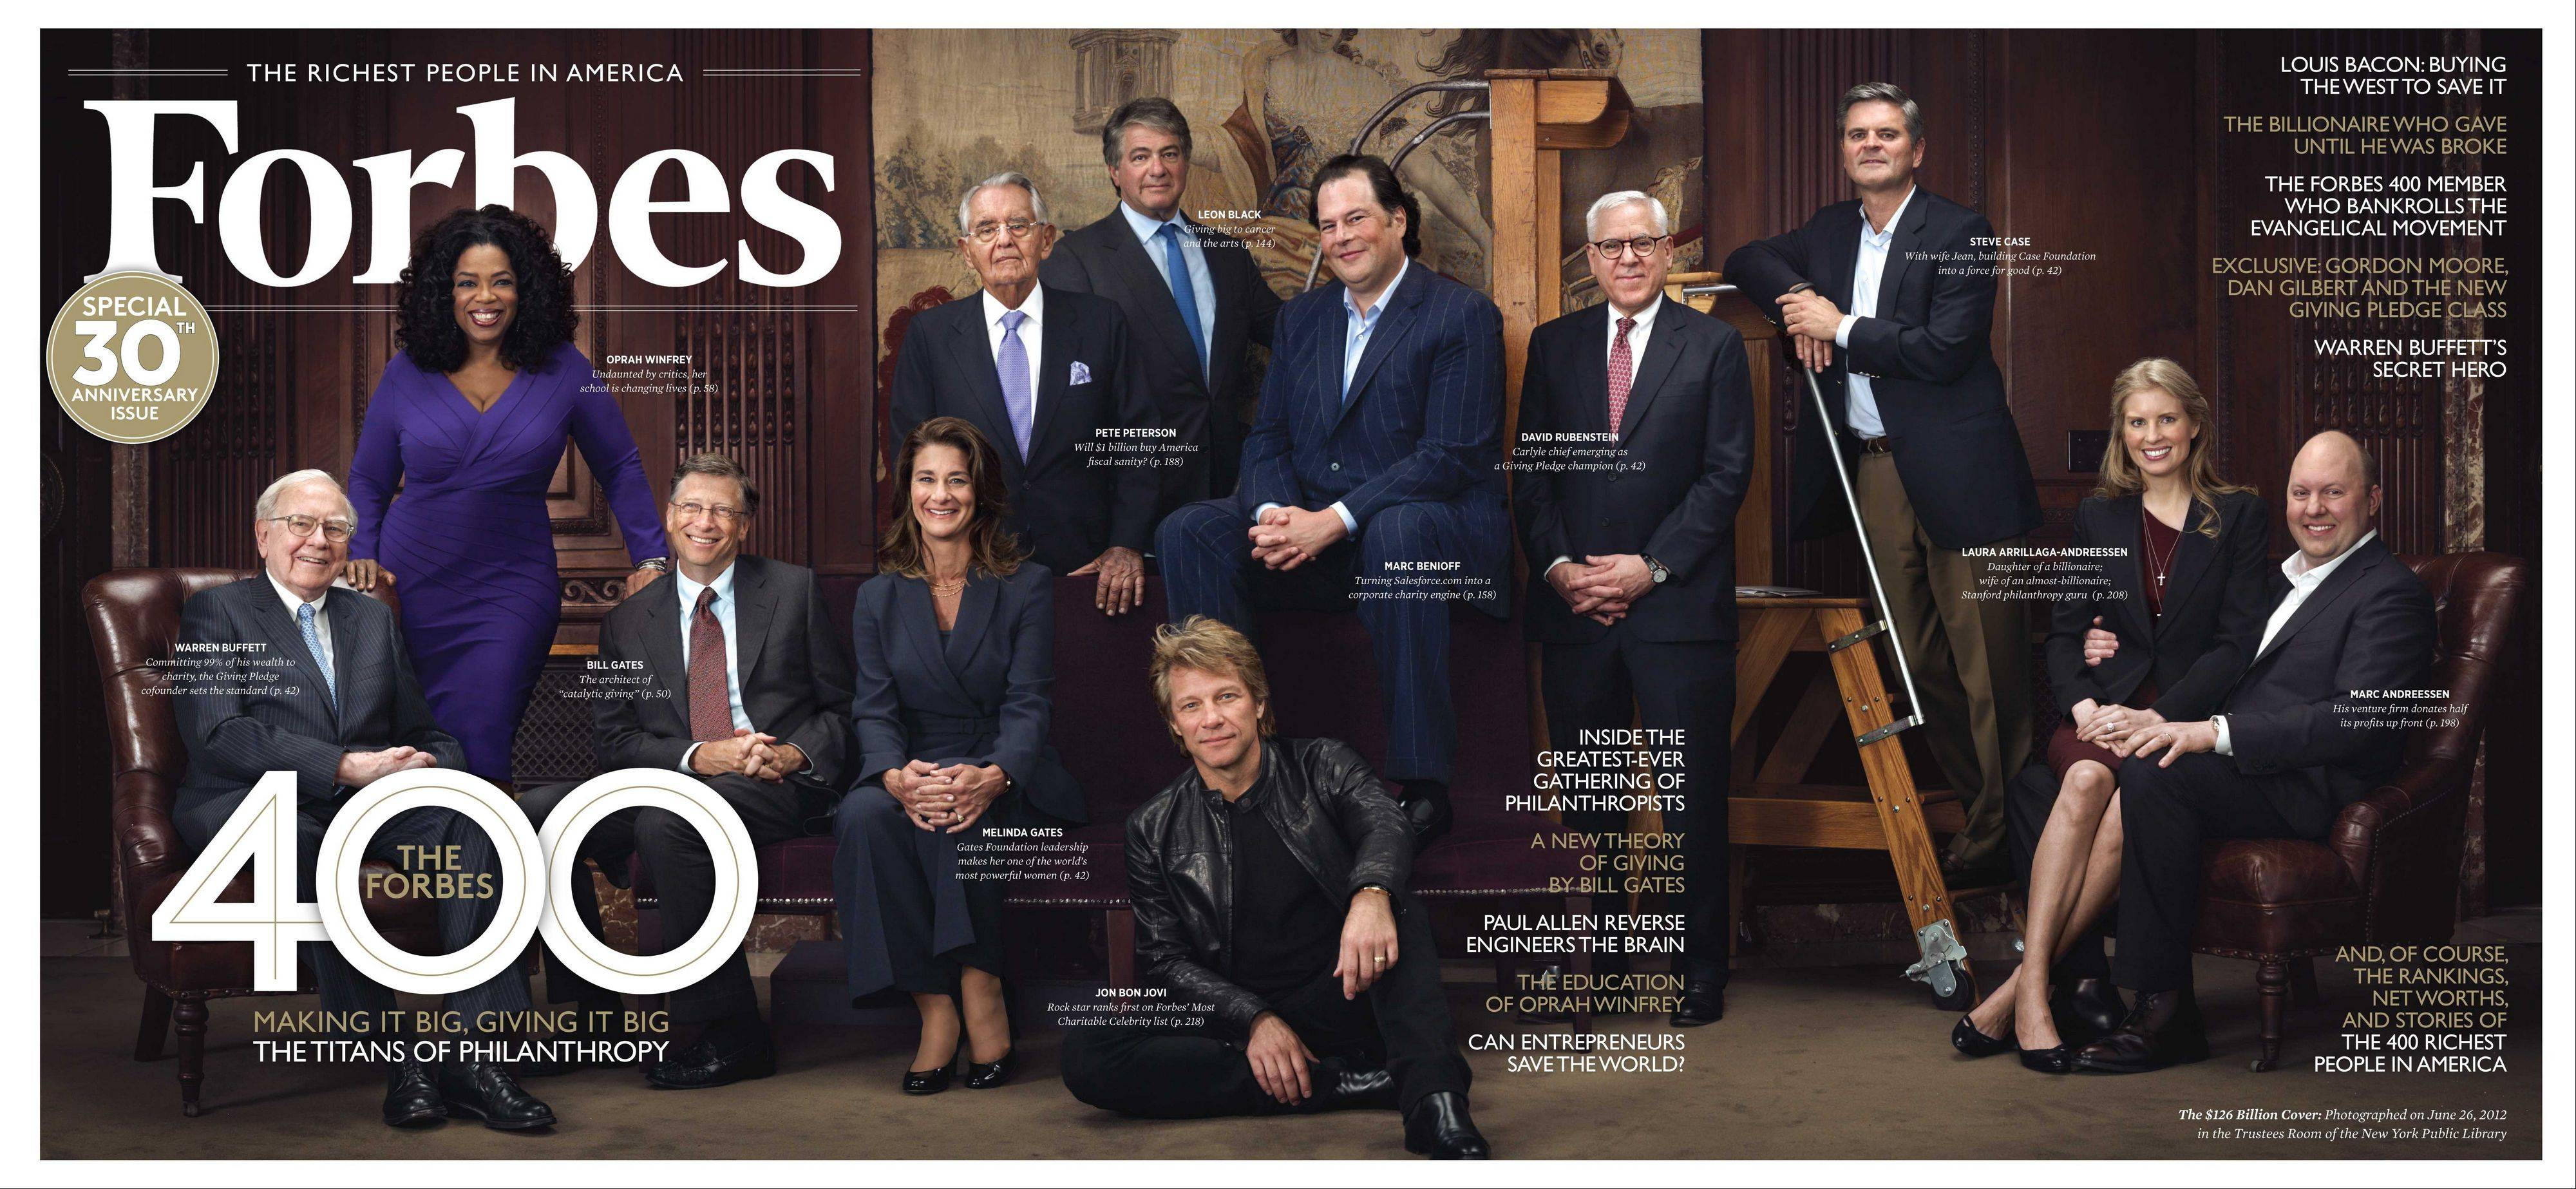 From left to right: Warren Buffett, Oprah Winfrey, Bill Gates, Melinda Gates, Pete Petersen, Leon Black, Jon Bon Jovi (seated on the ground), Marc Benioff, David Rubenstein, Steve Case, Laura Arrillaga-Andreessen, Marc Andreessen posing for a portrait in the Trustees Room at the New York Public Library in New York.